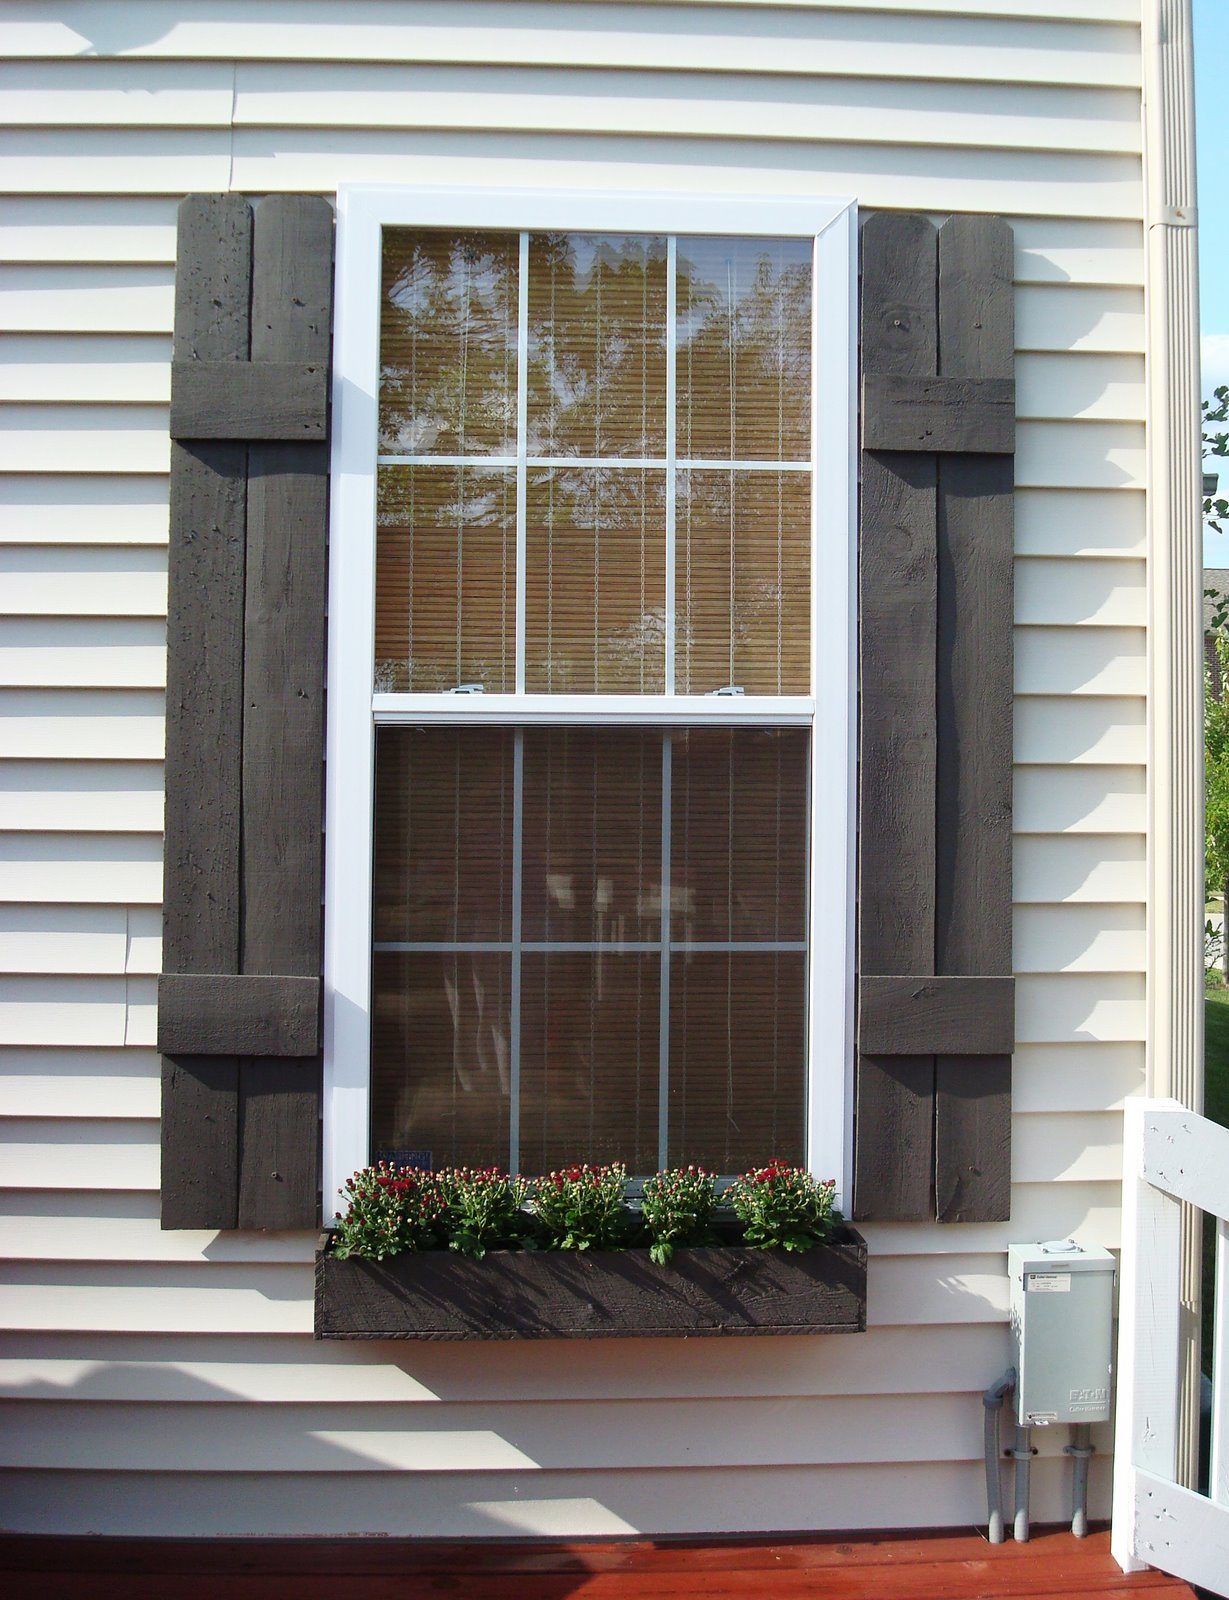 Exterior Windows remodelaholic | 25 inspiring outdoor window treatments